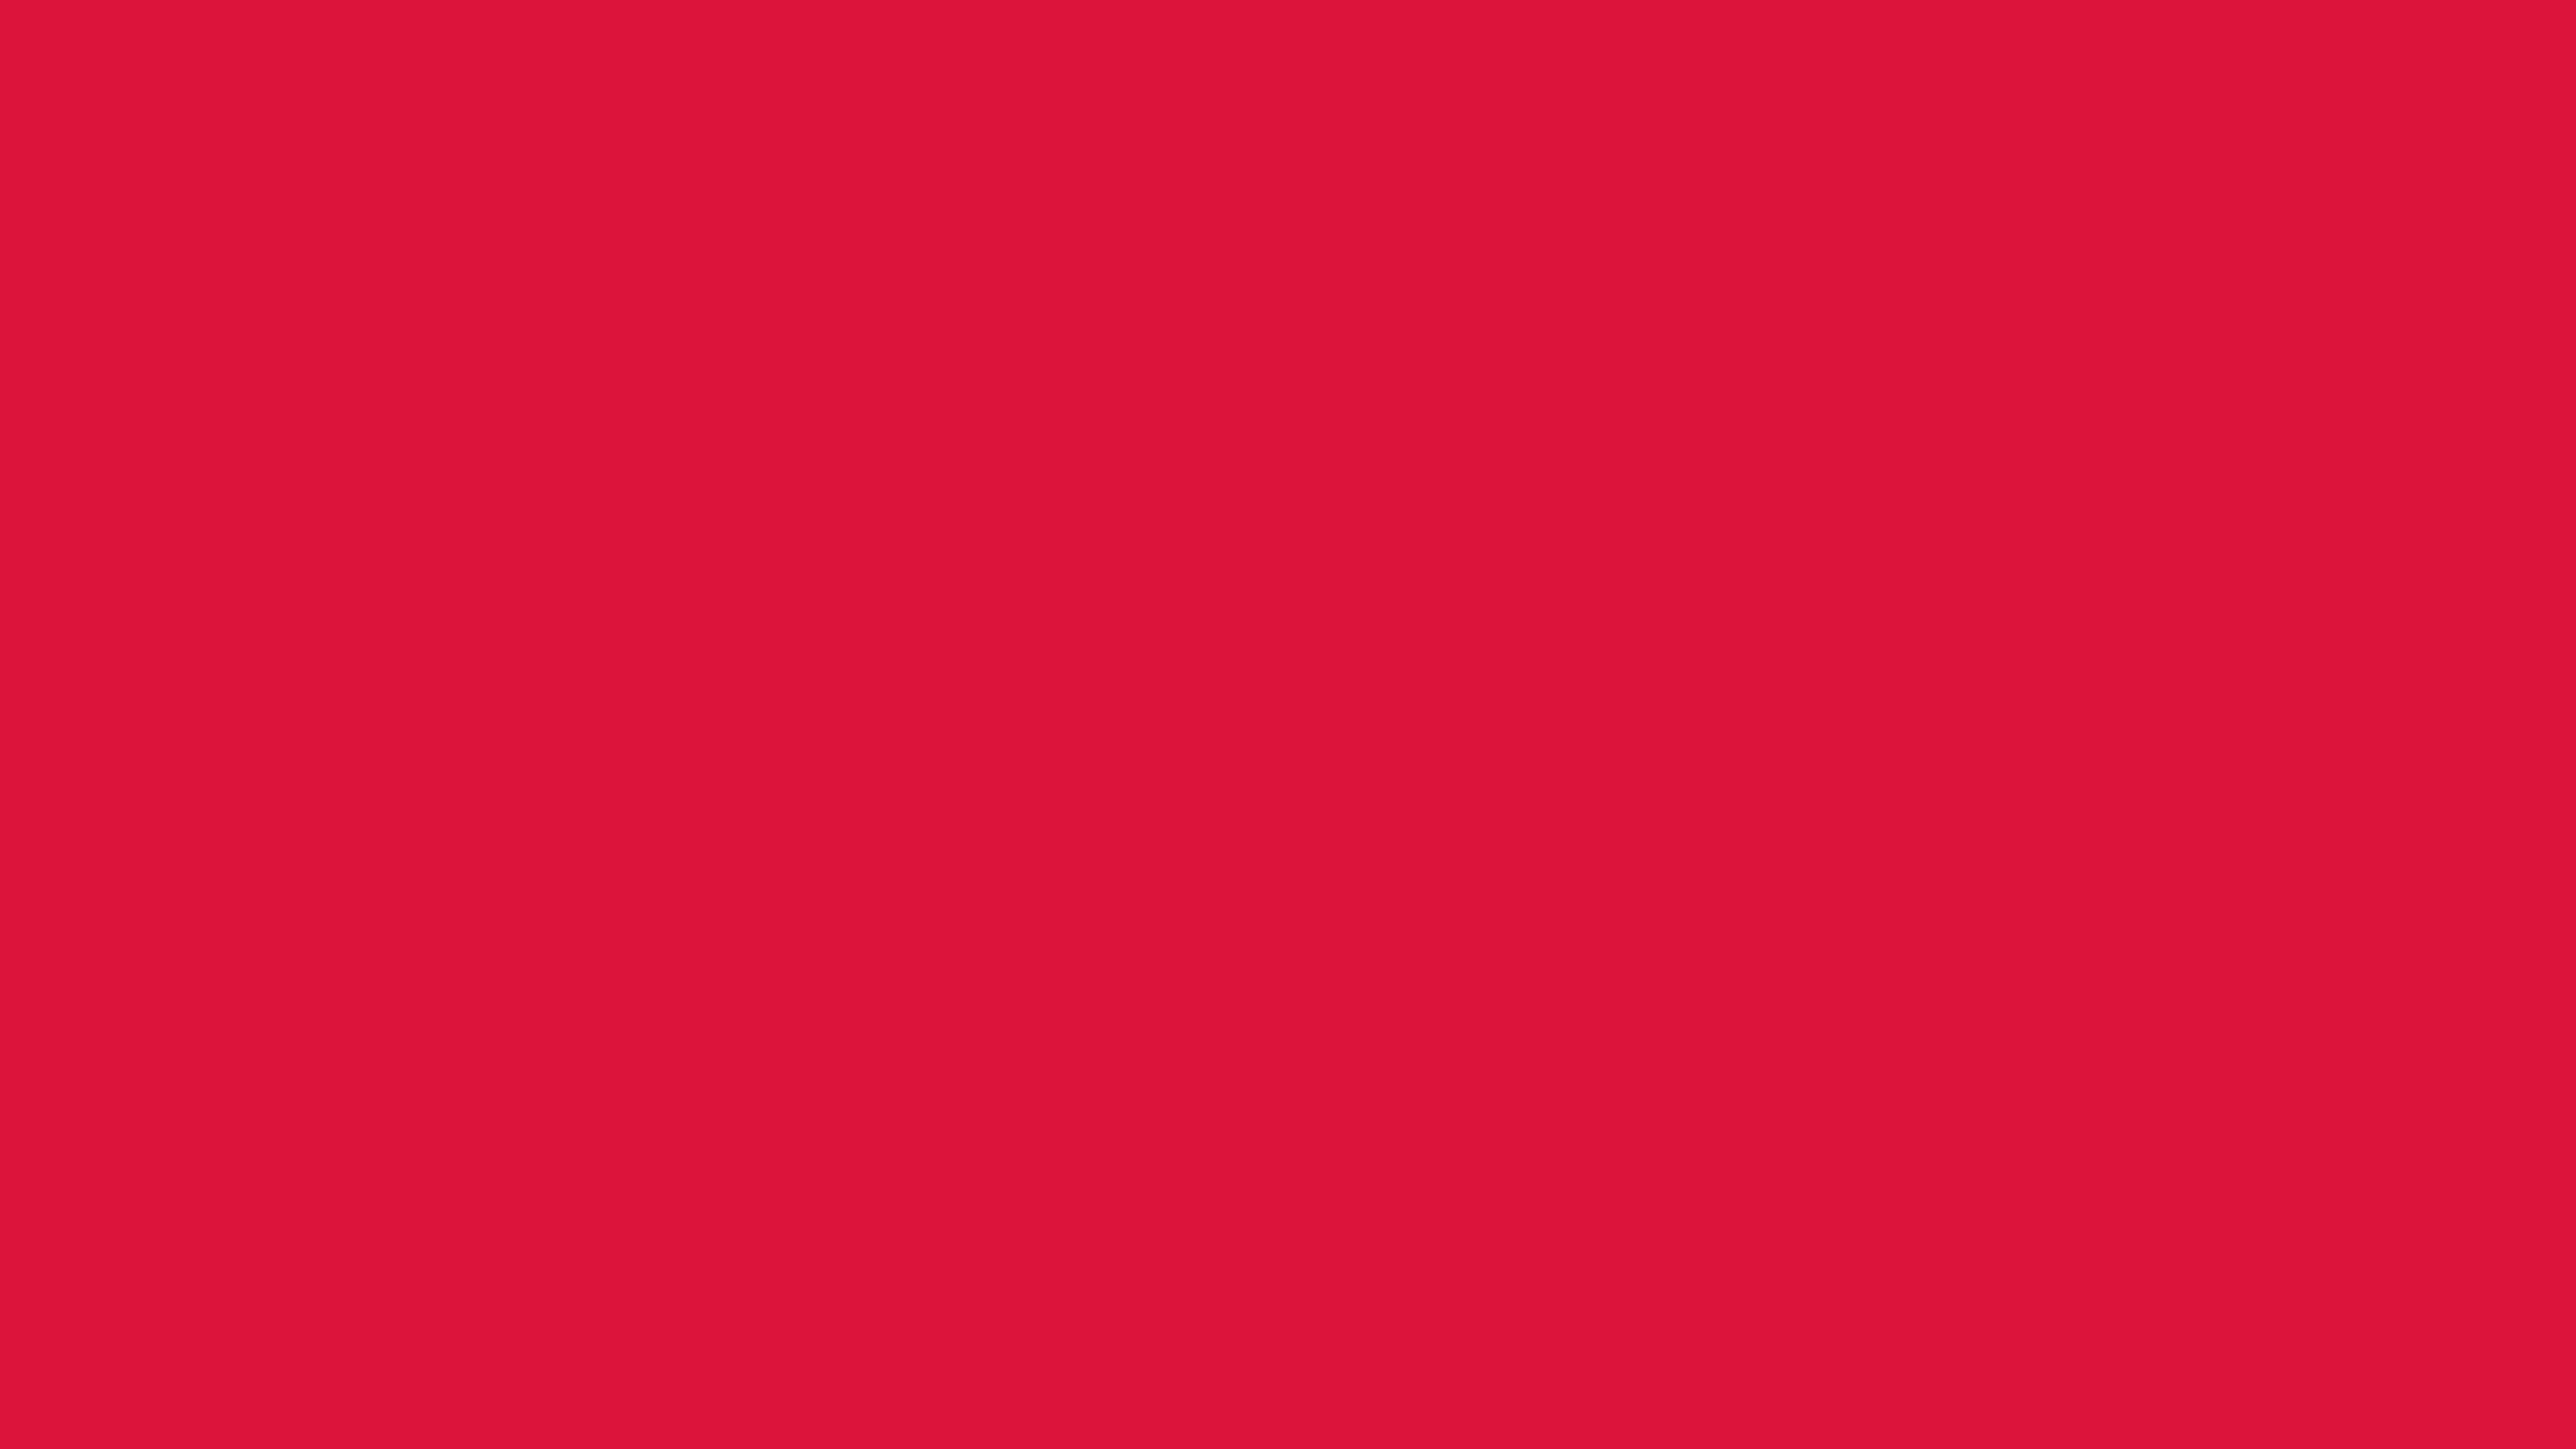 5120x2880 Crimson Solid Color Background